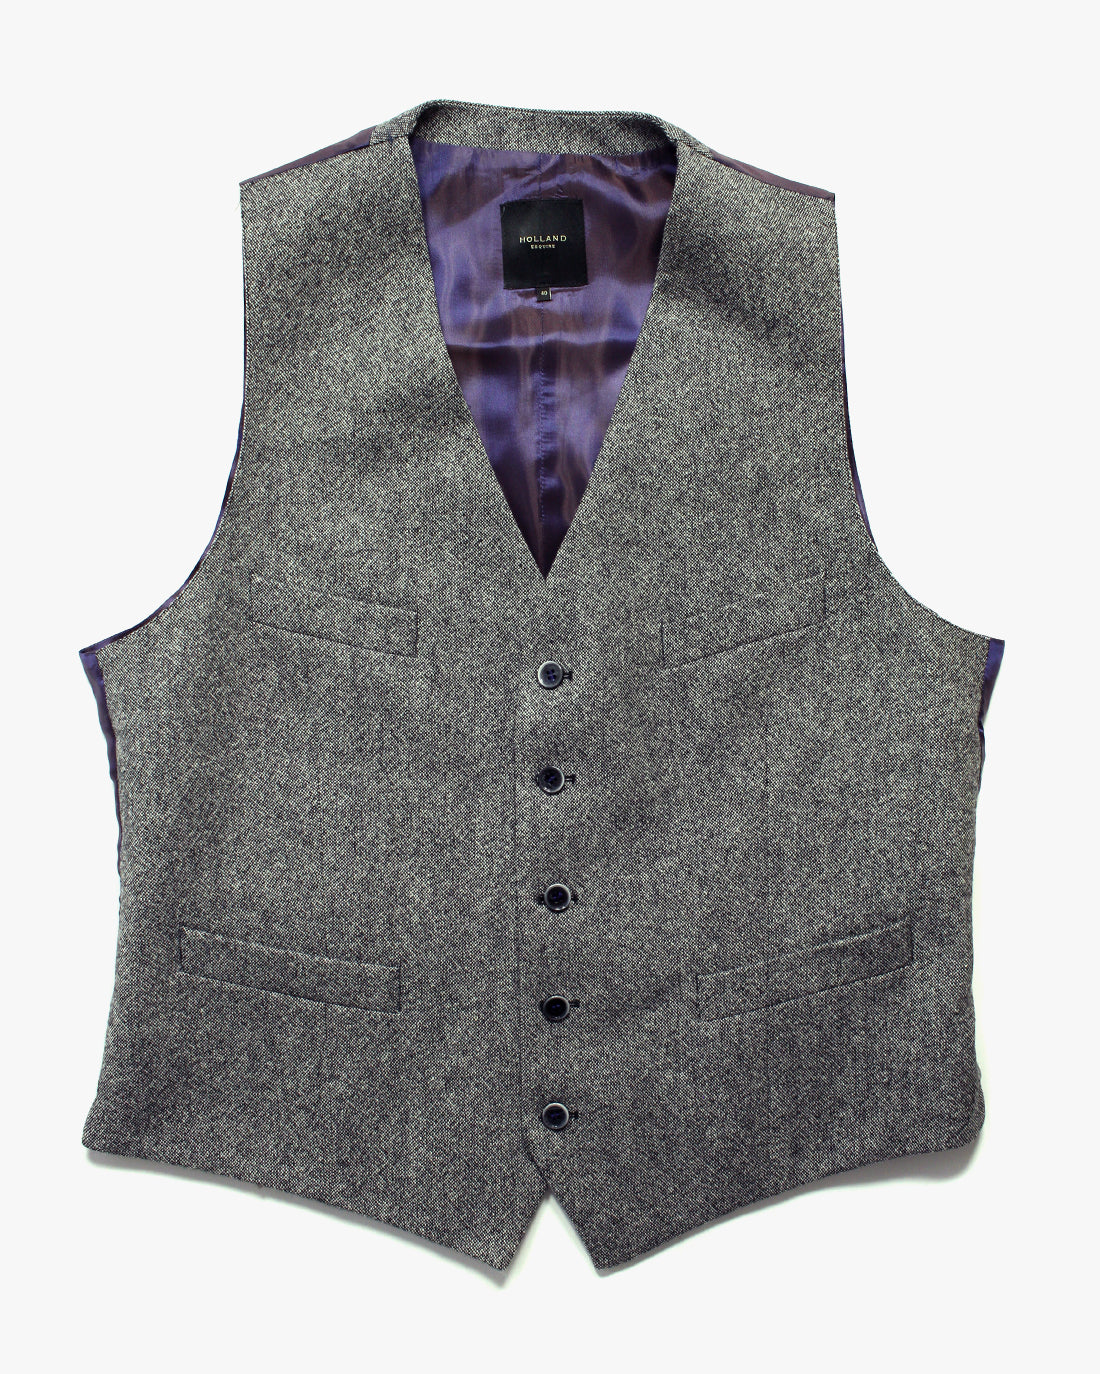 Grey Donegal Lambswool Three Piece Suit - Holland Esquire